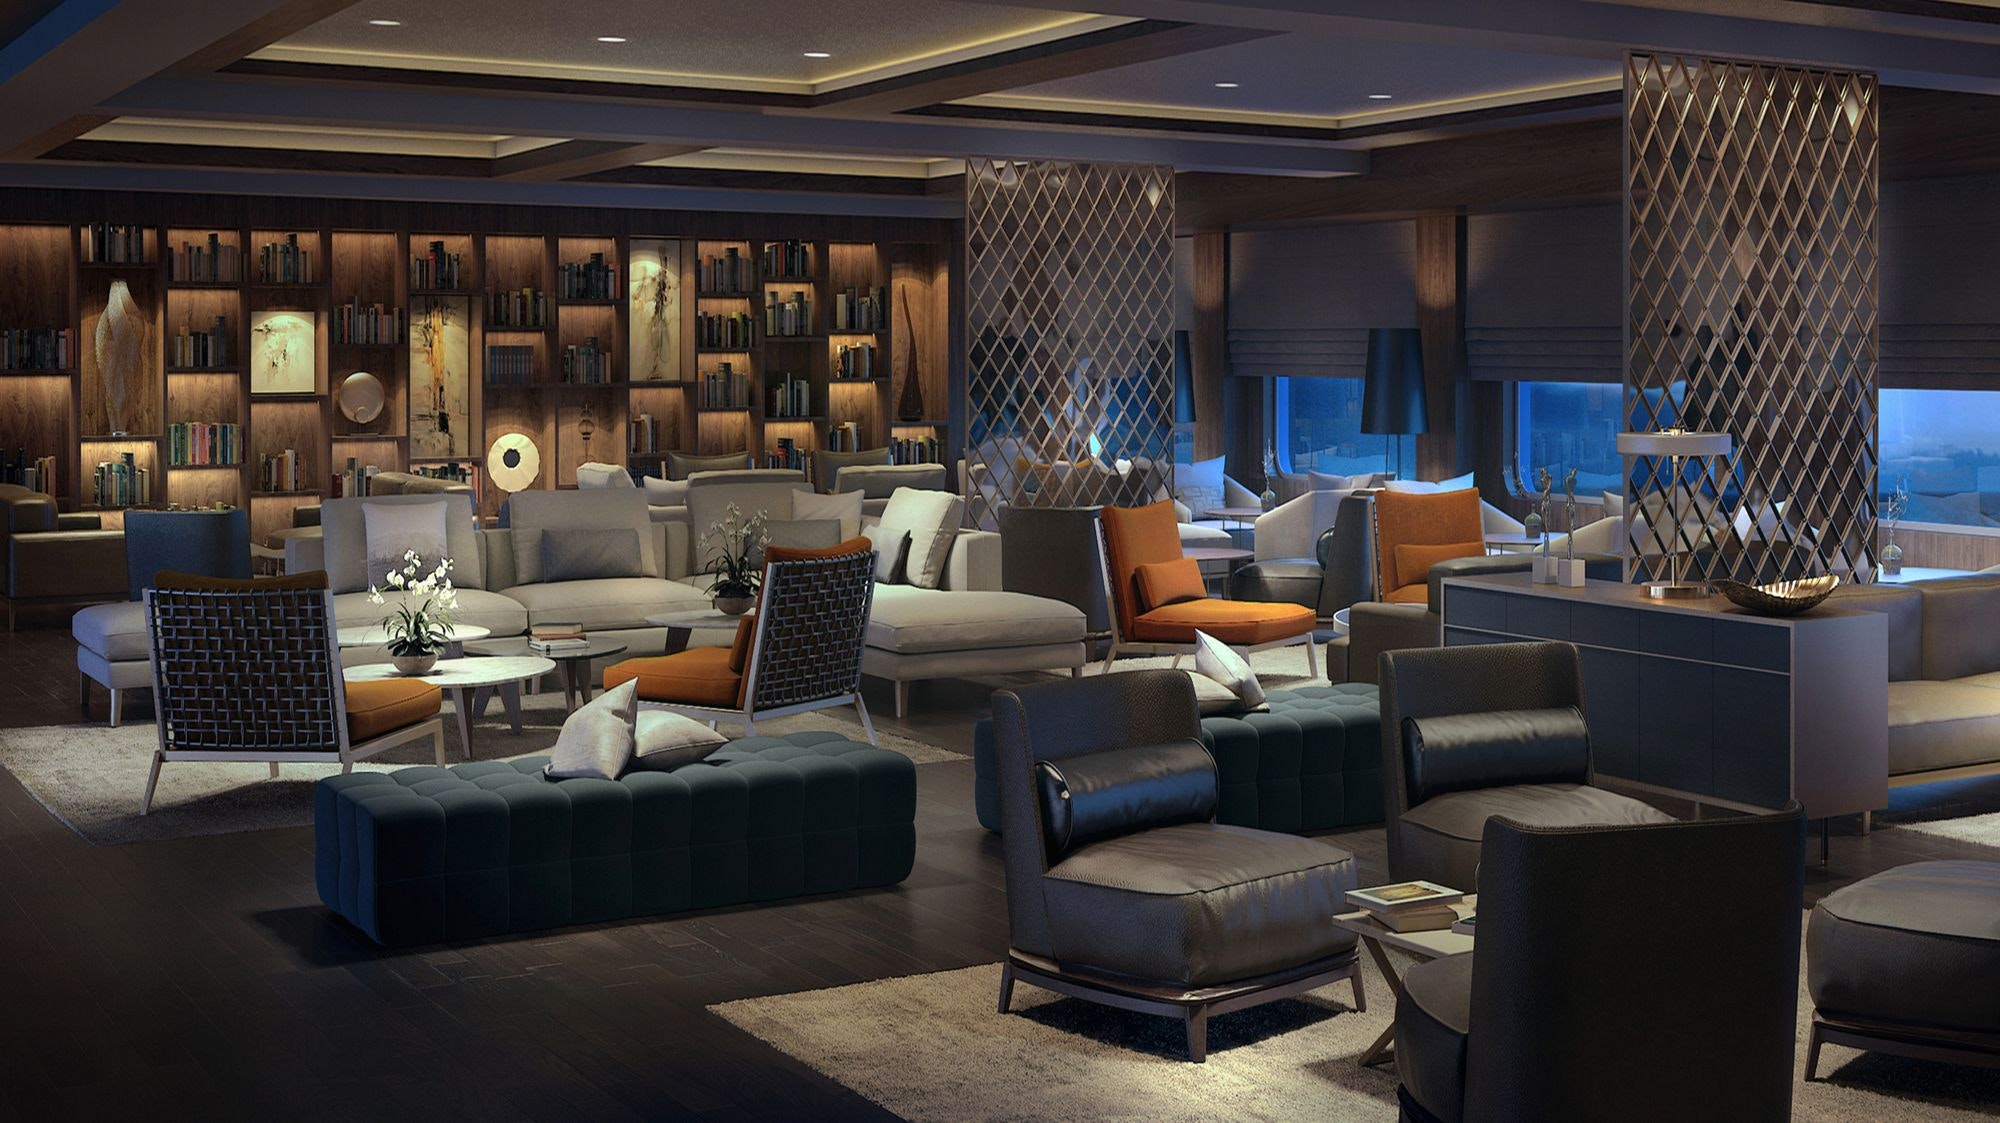 A rendering of the onboard Living Room—a cozy area that will serve as a library and café